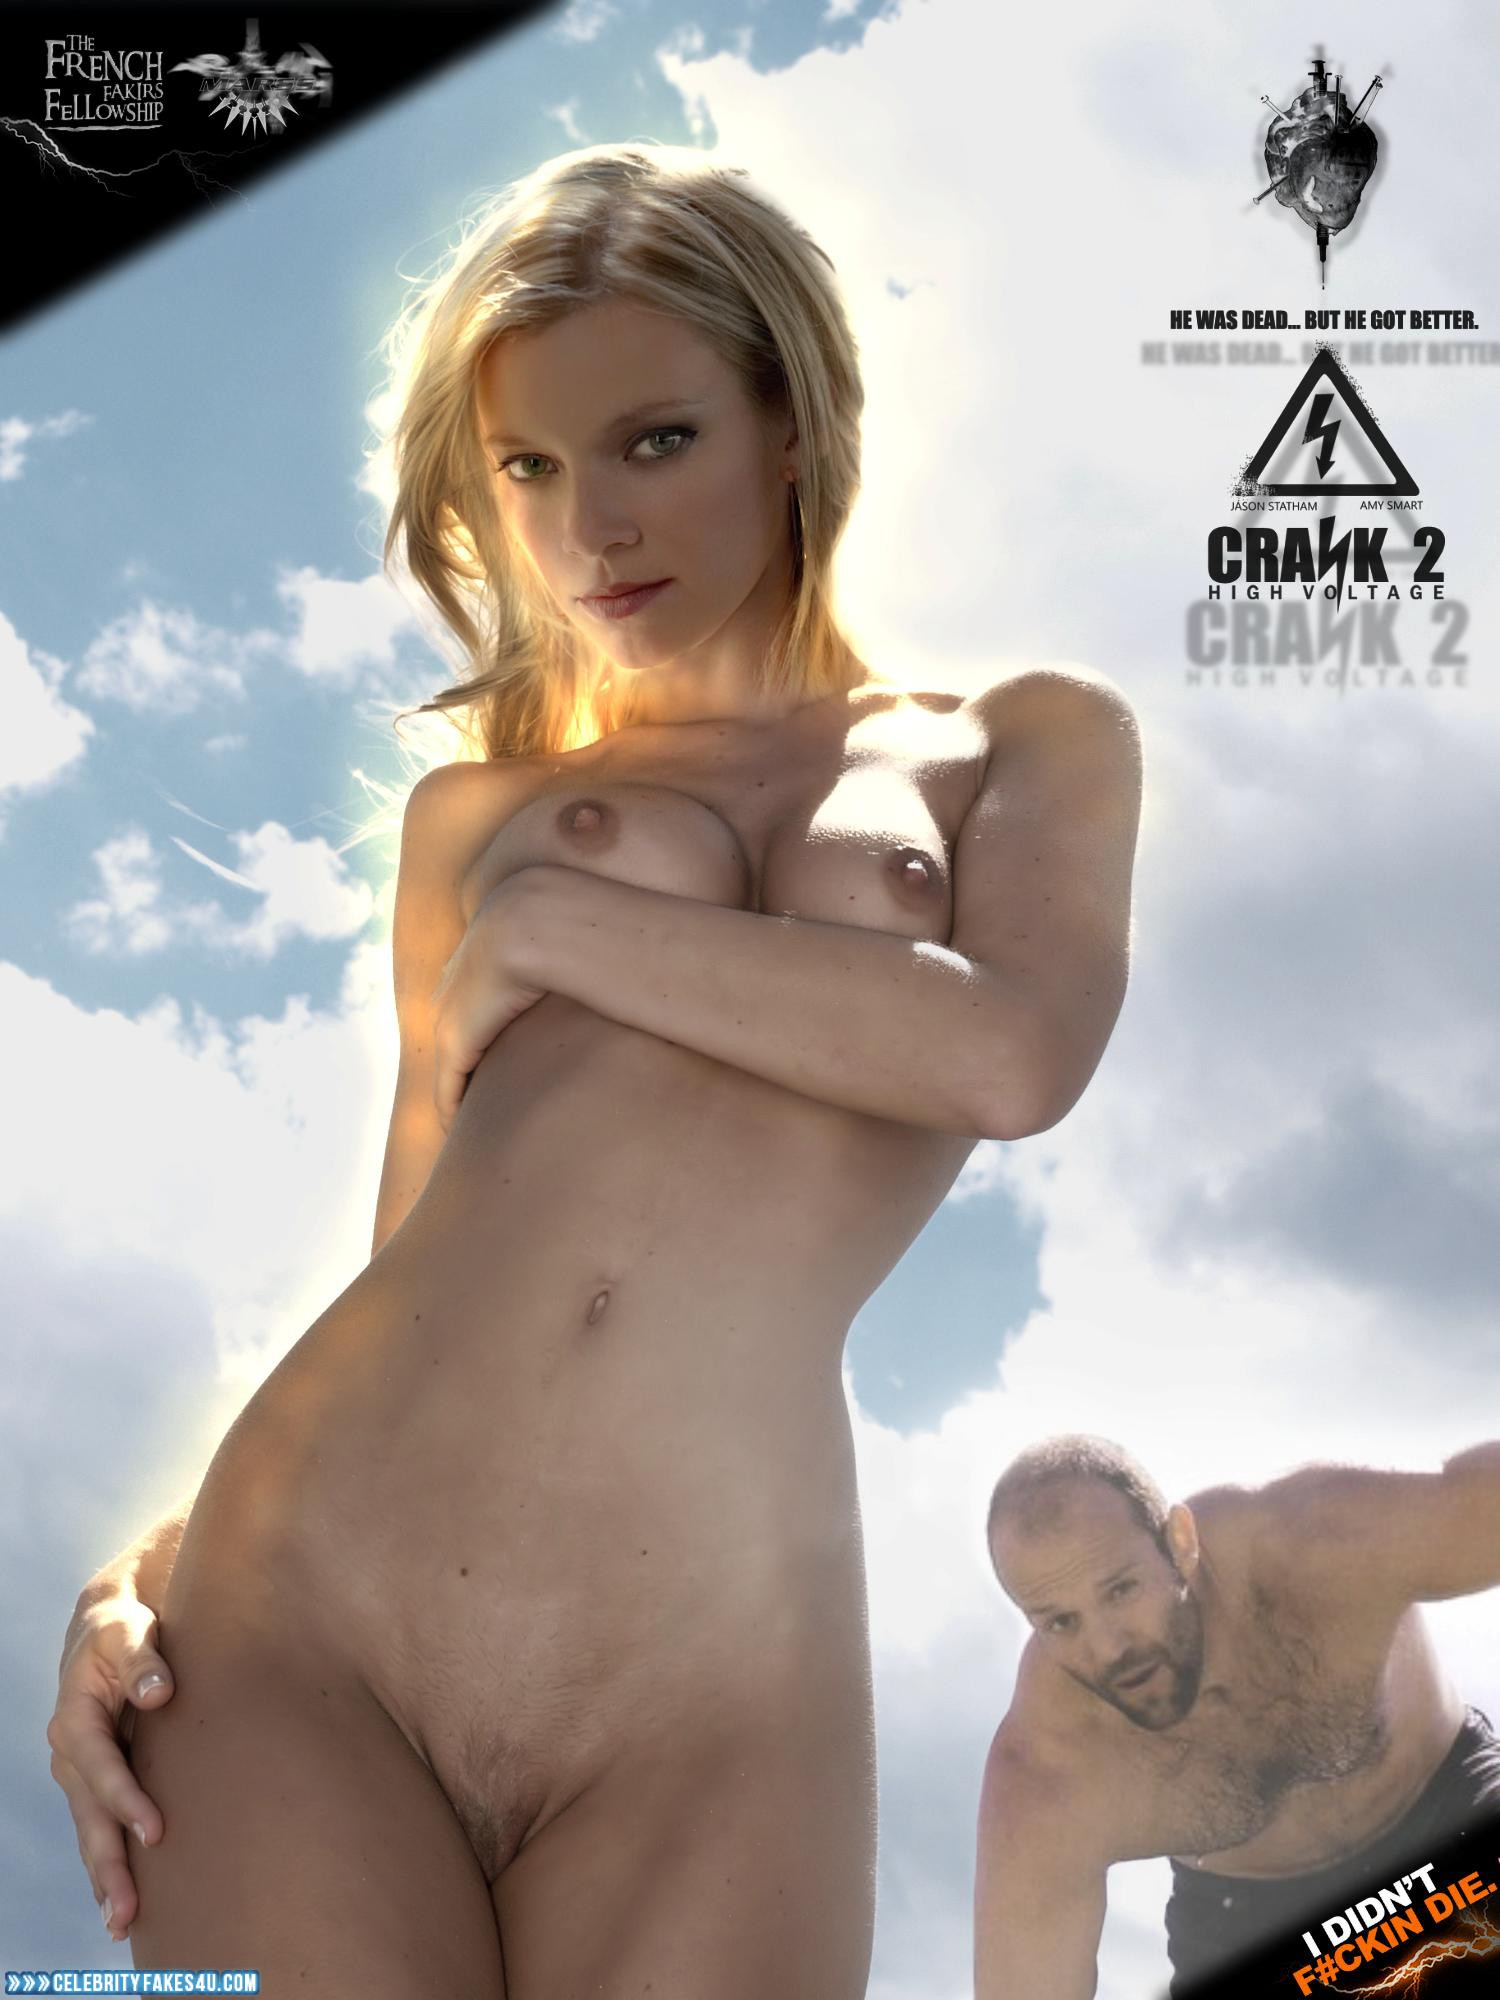 Amy Smart Nude Pictures amy smart movie cover boobs squeezed nudes 001 « celebrity